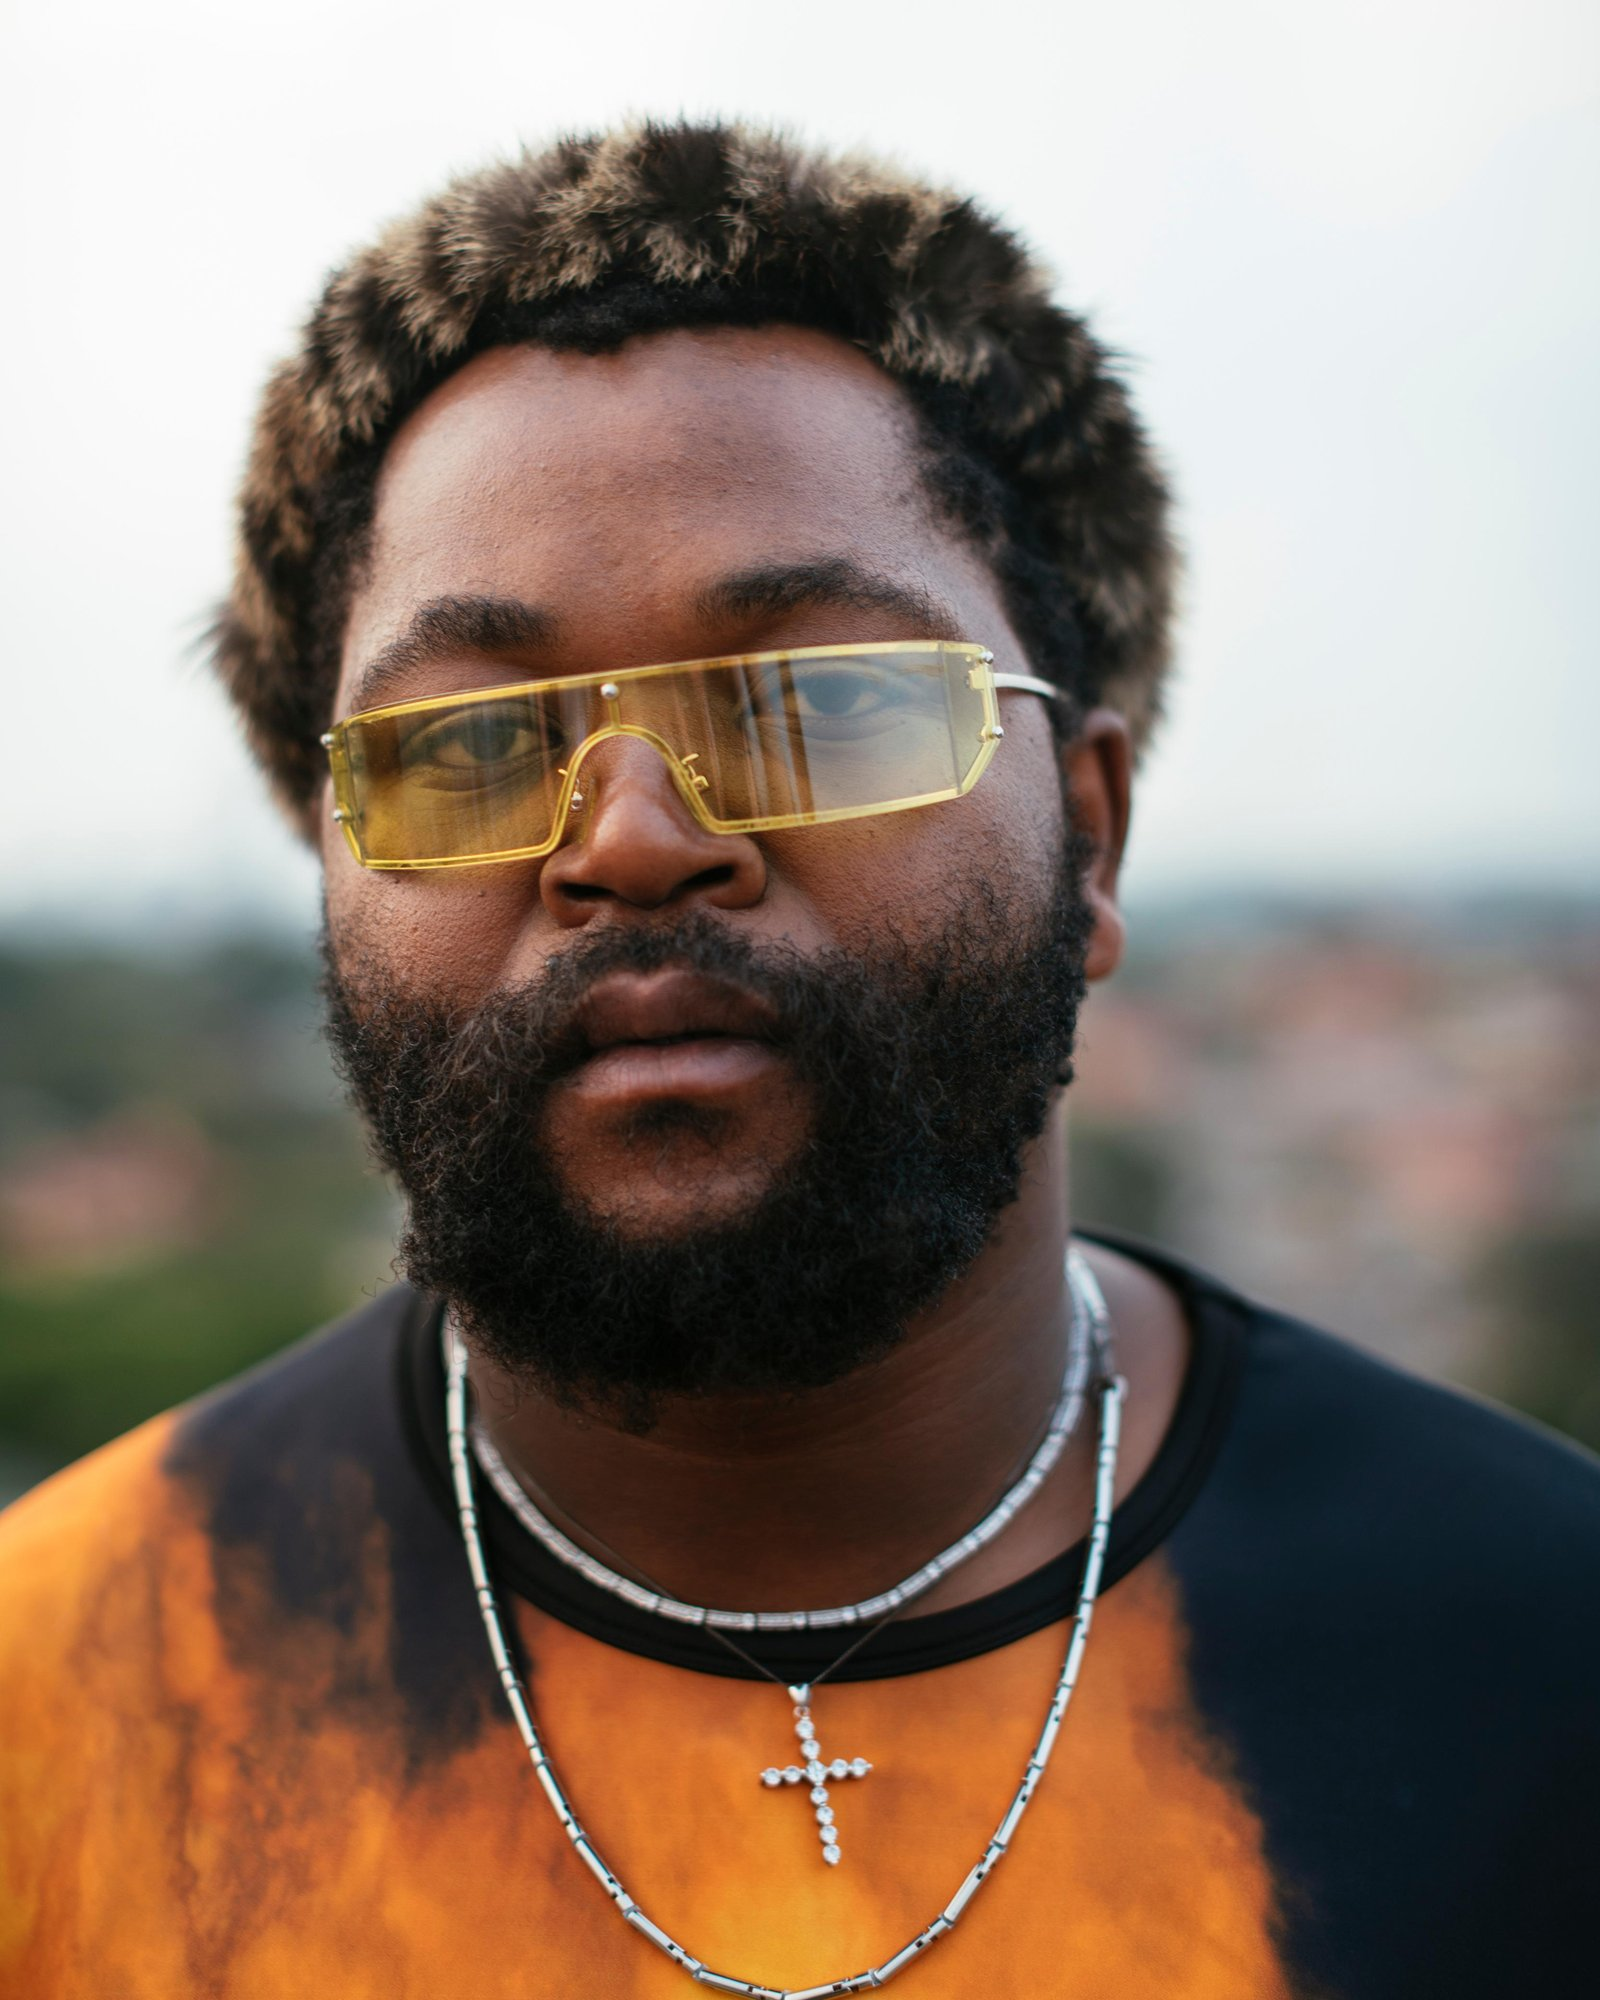 sjava Sjava Dropping New #Umphako EP This Friday [Watch] sjava